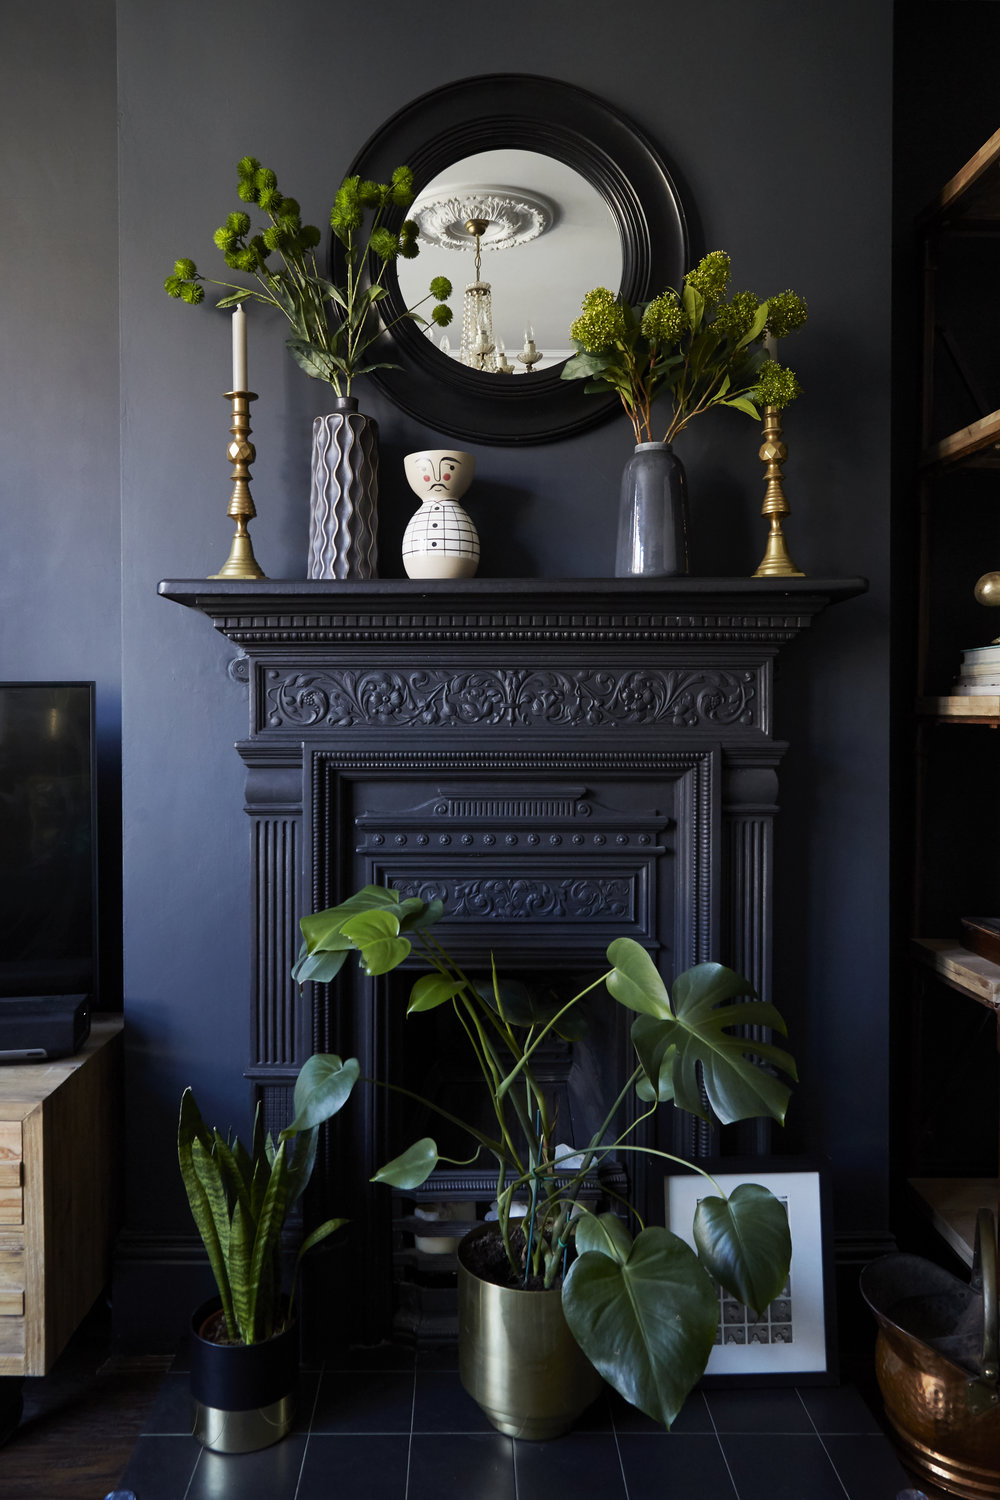 Solid brass candlesticks are antique; Vases are from   Homesense   ;  Faux flowers are from   Homesense;       Brass plant pot     is from     H&M   .    Black Mirror   from   Wayfair    .